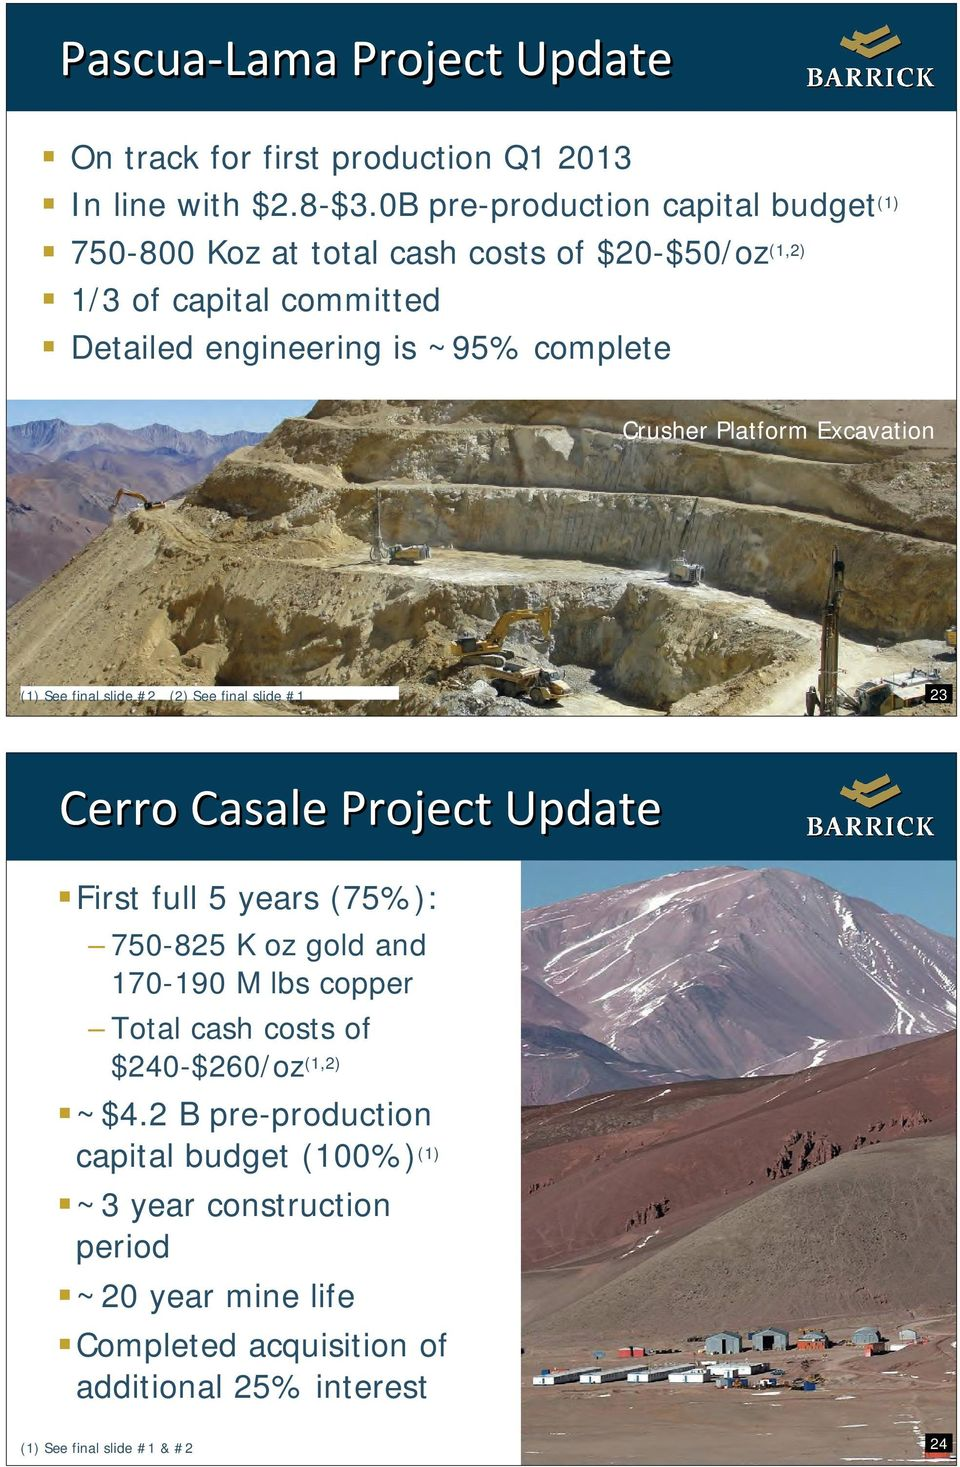 Crusher Platform Excavation (1) See final slide #2 (2) See final slide #1 23 Cerro Casale Project Update First full 5 years (75%): 750-825 K oz gold and